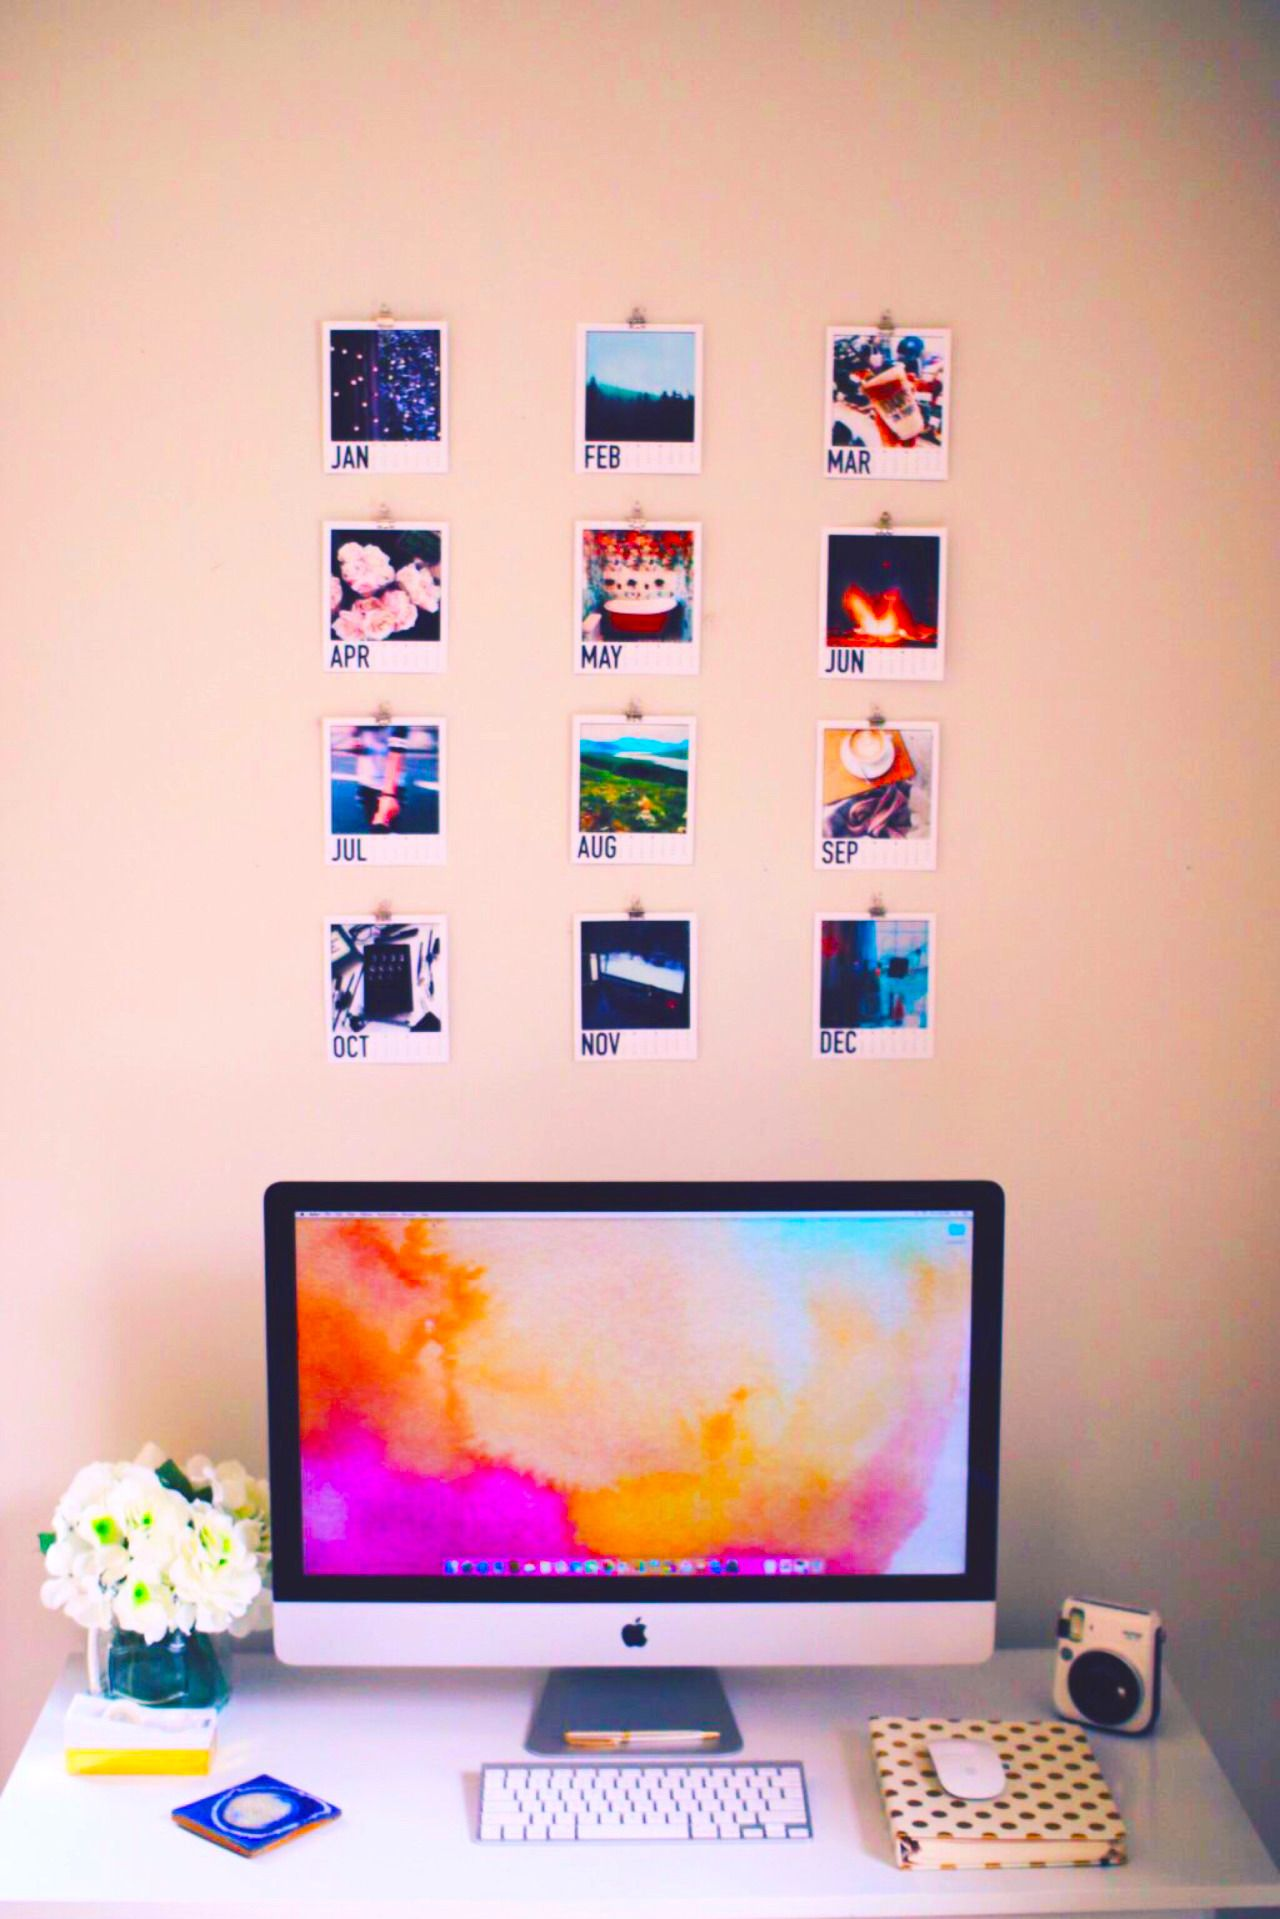 Diy Room Decor Hipster diy calendar + room decorations! (click on picture for youtube